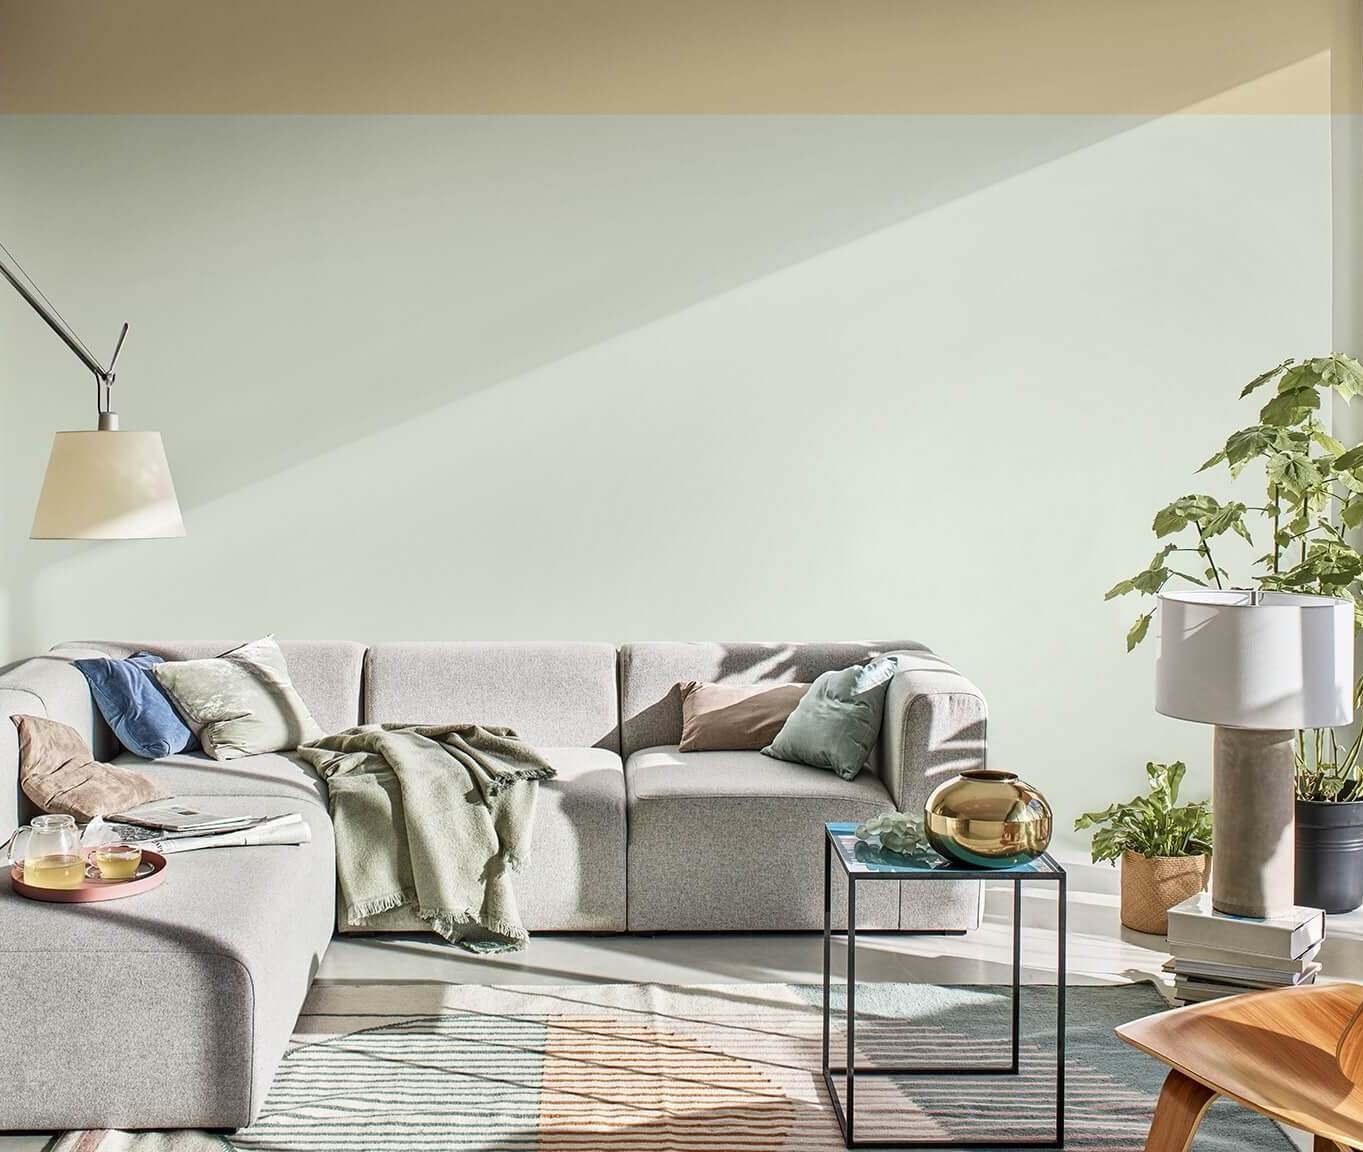 FEATUREDdulux-colour-futures-colour-of-the-year-2020-a-home-for-care-livingroom-inspiration-united-kingdom-1_0